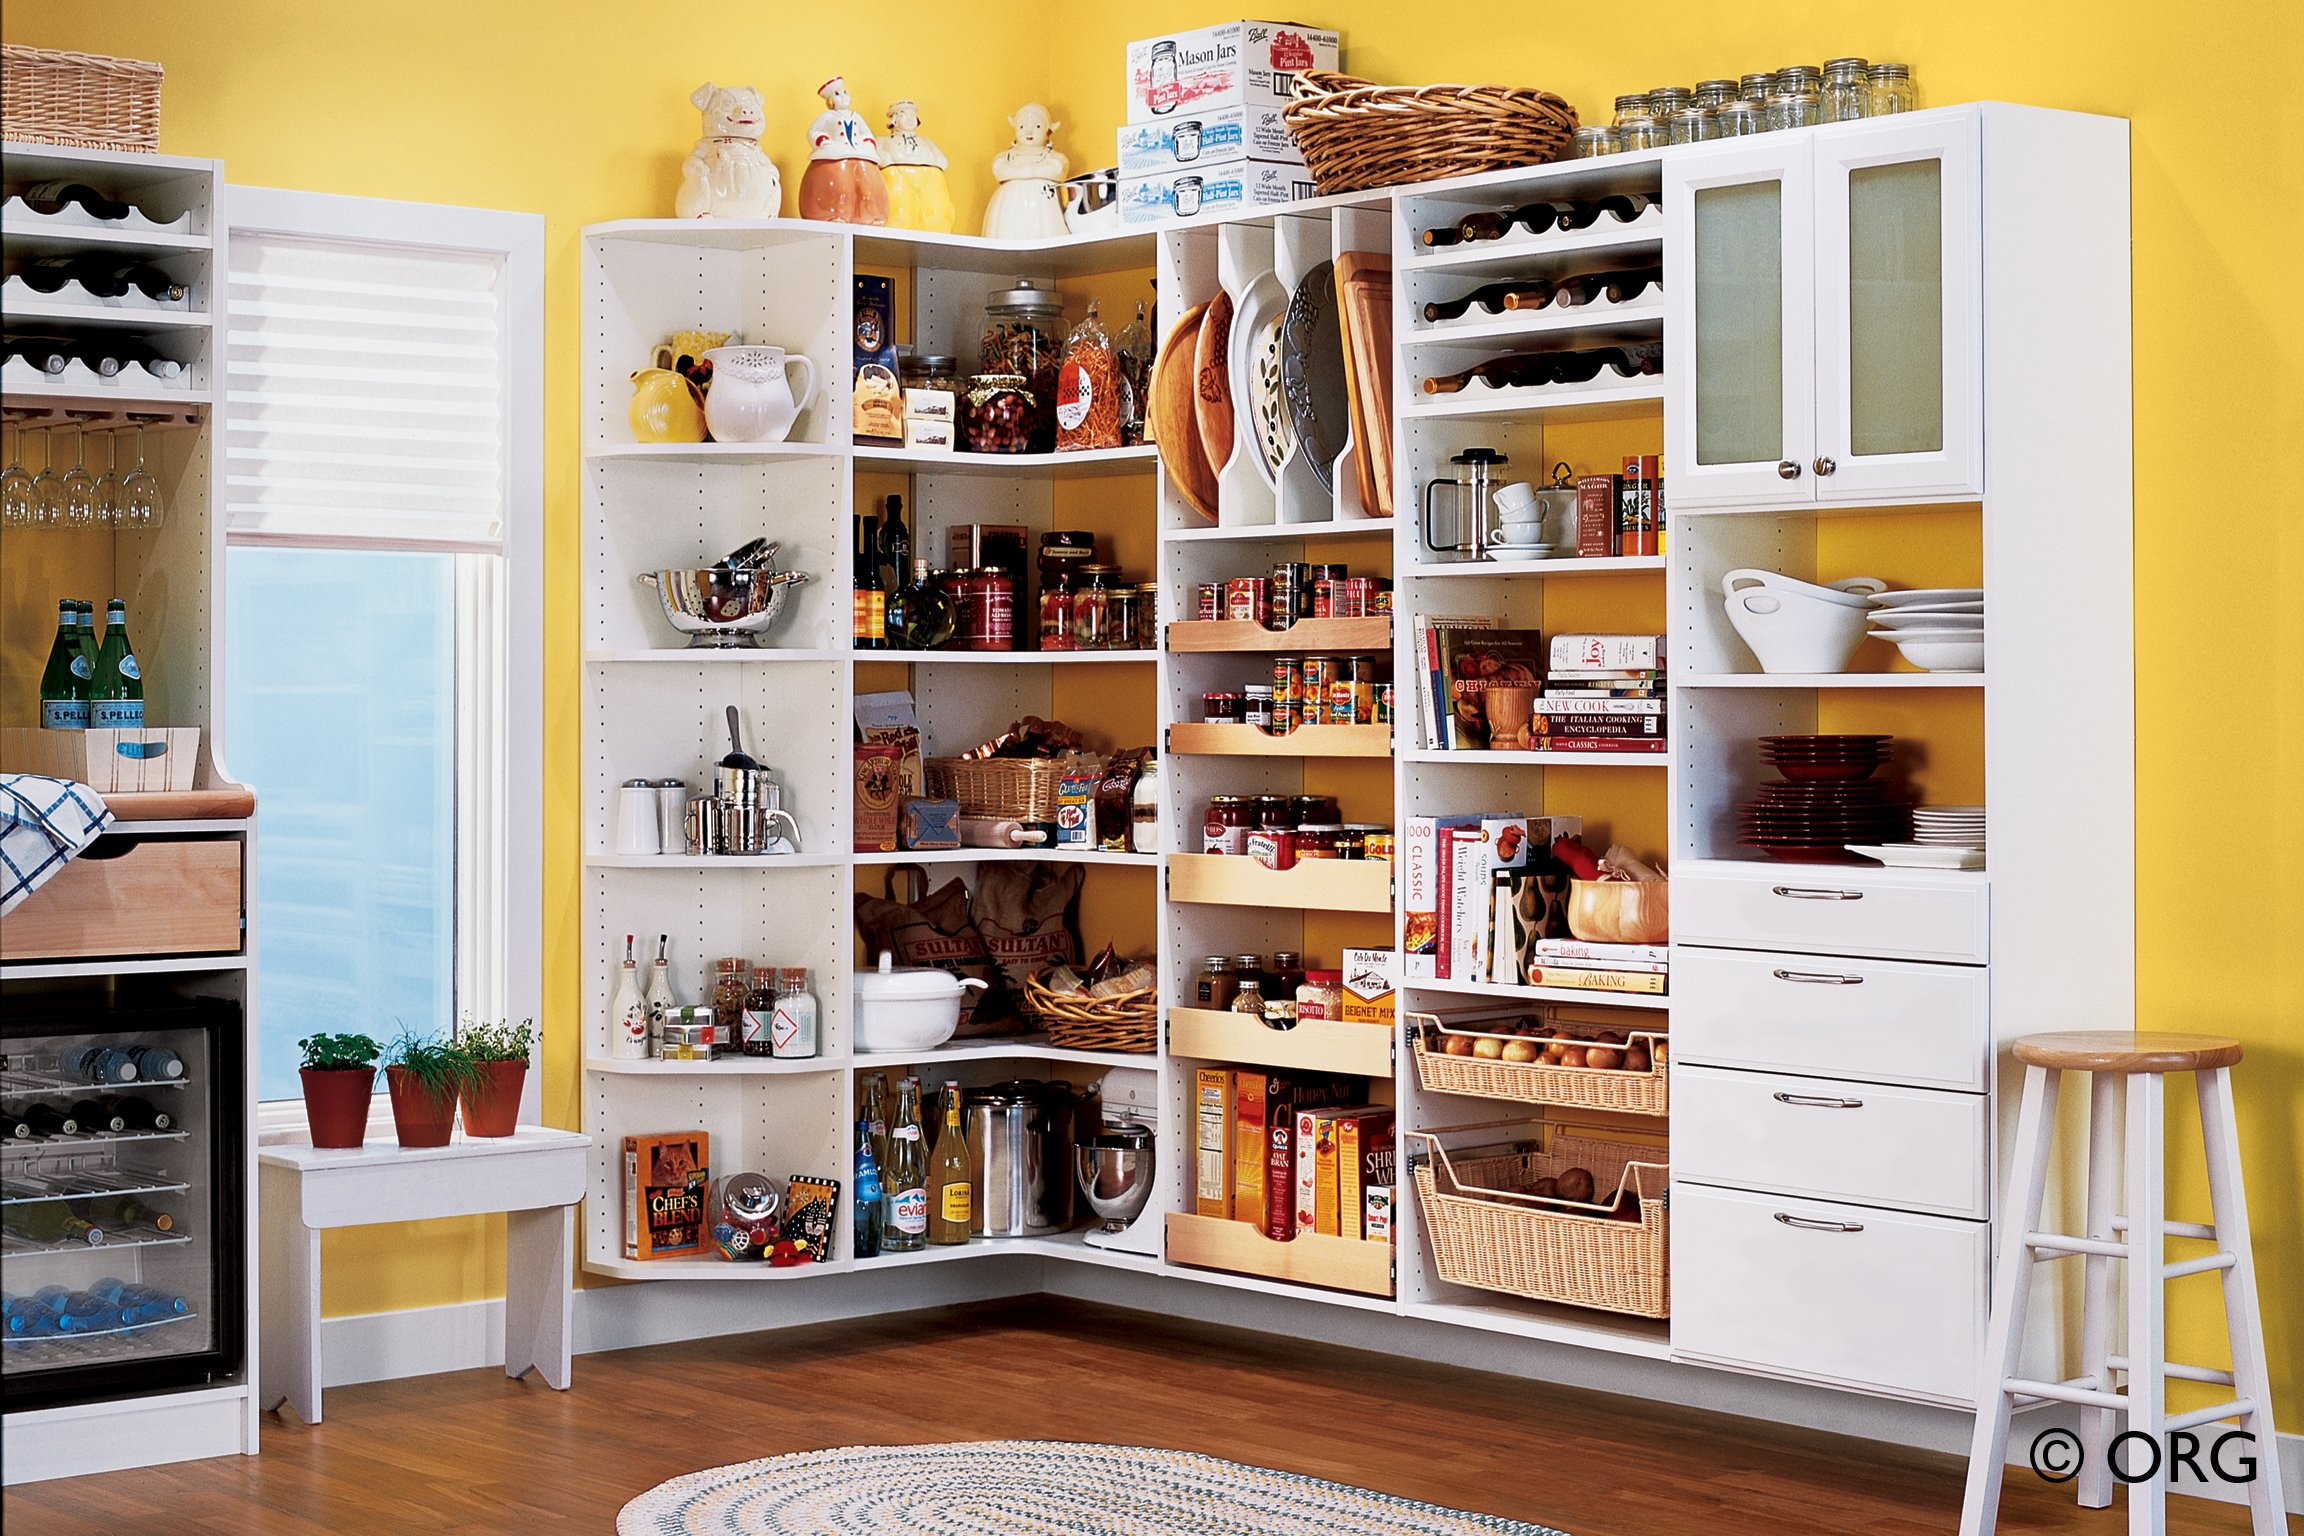 Kitchen Storage kitchen storage solutions: pantry storage cabinets